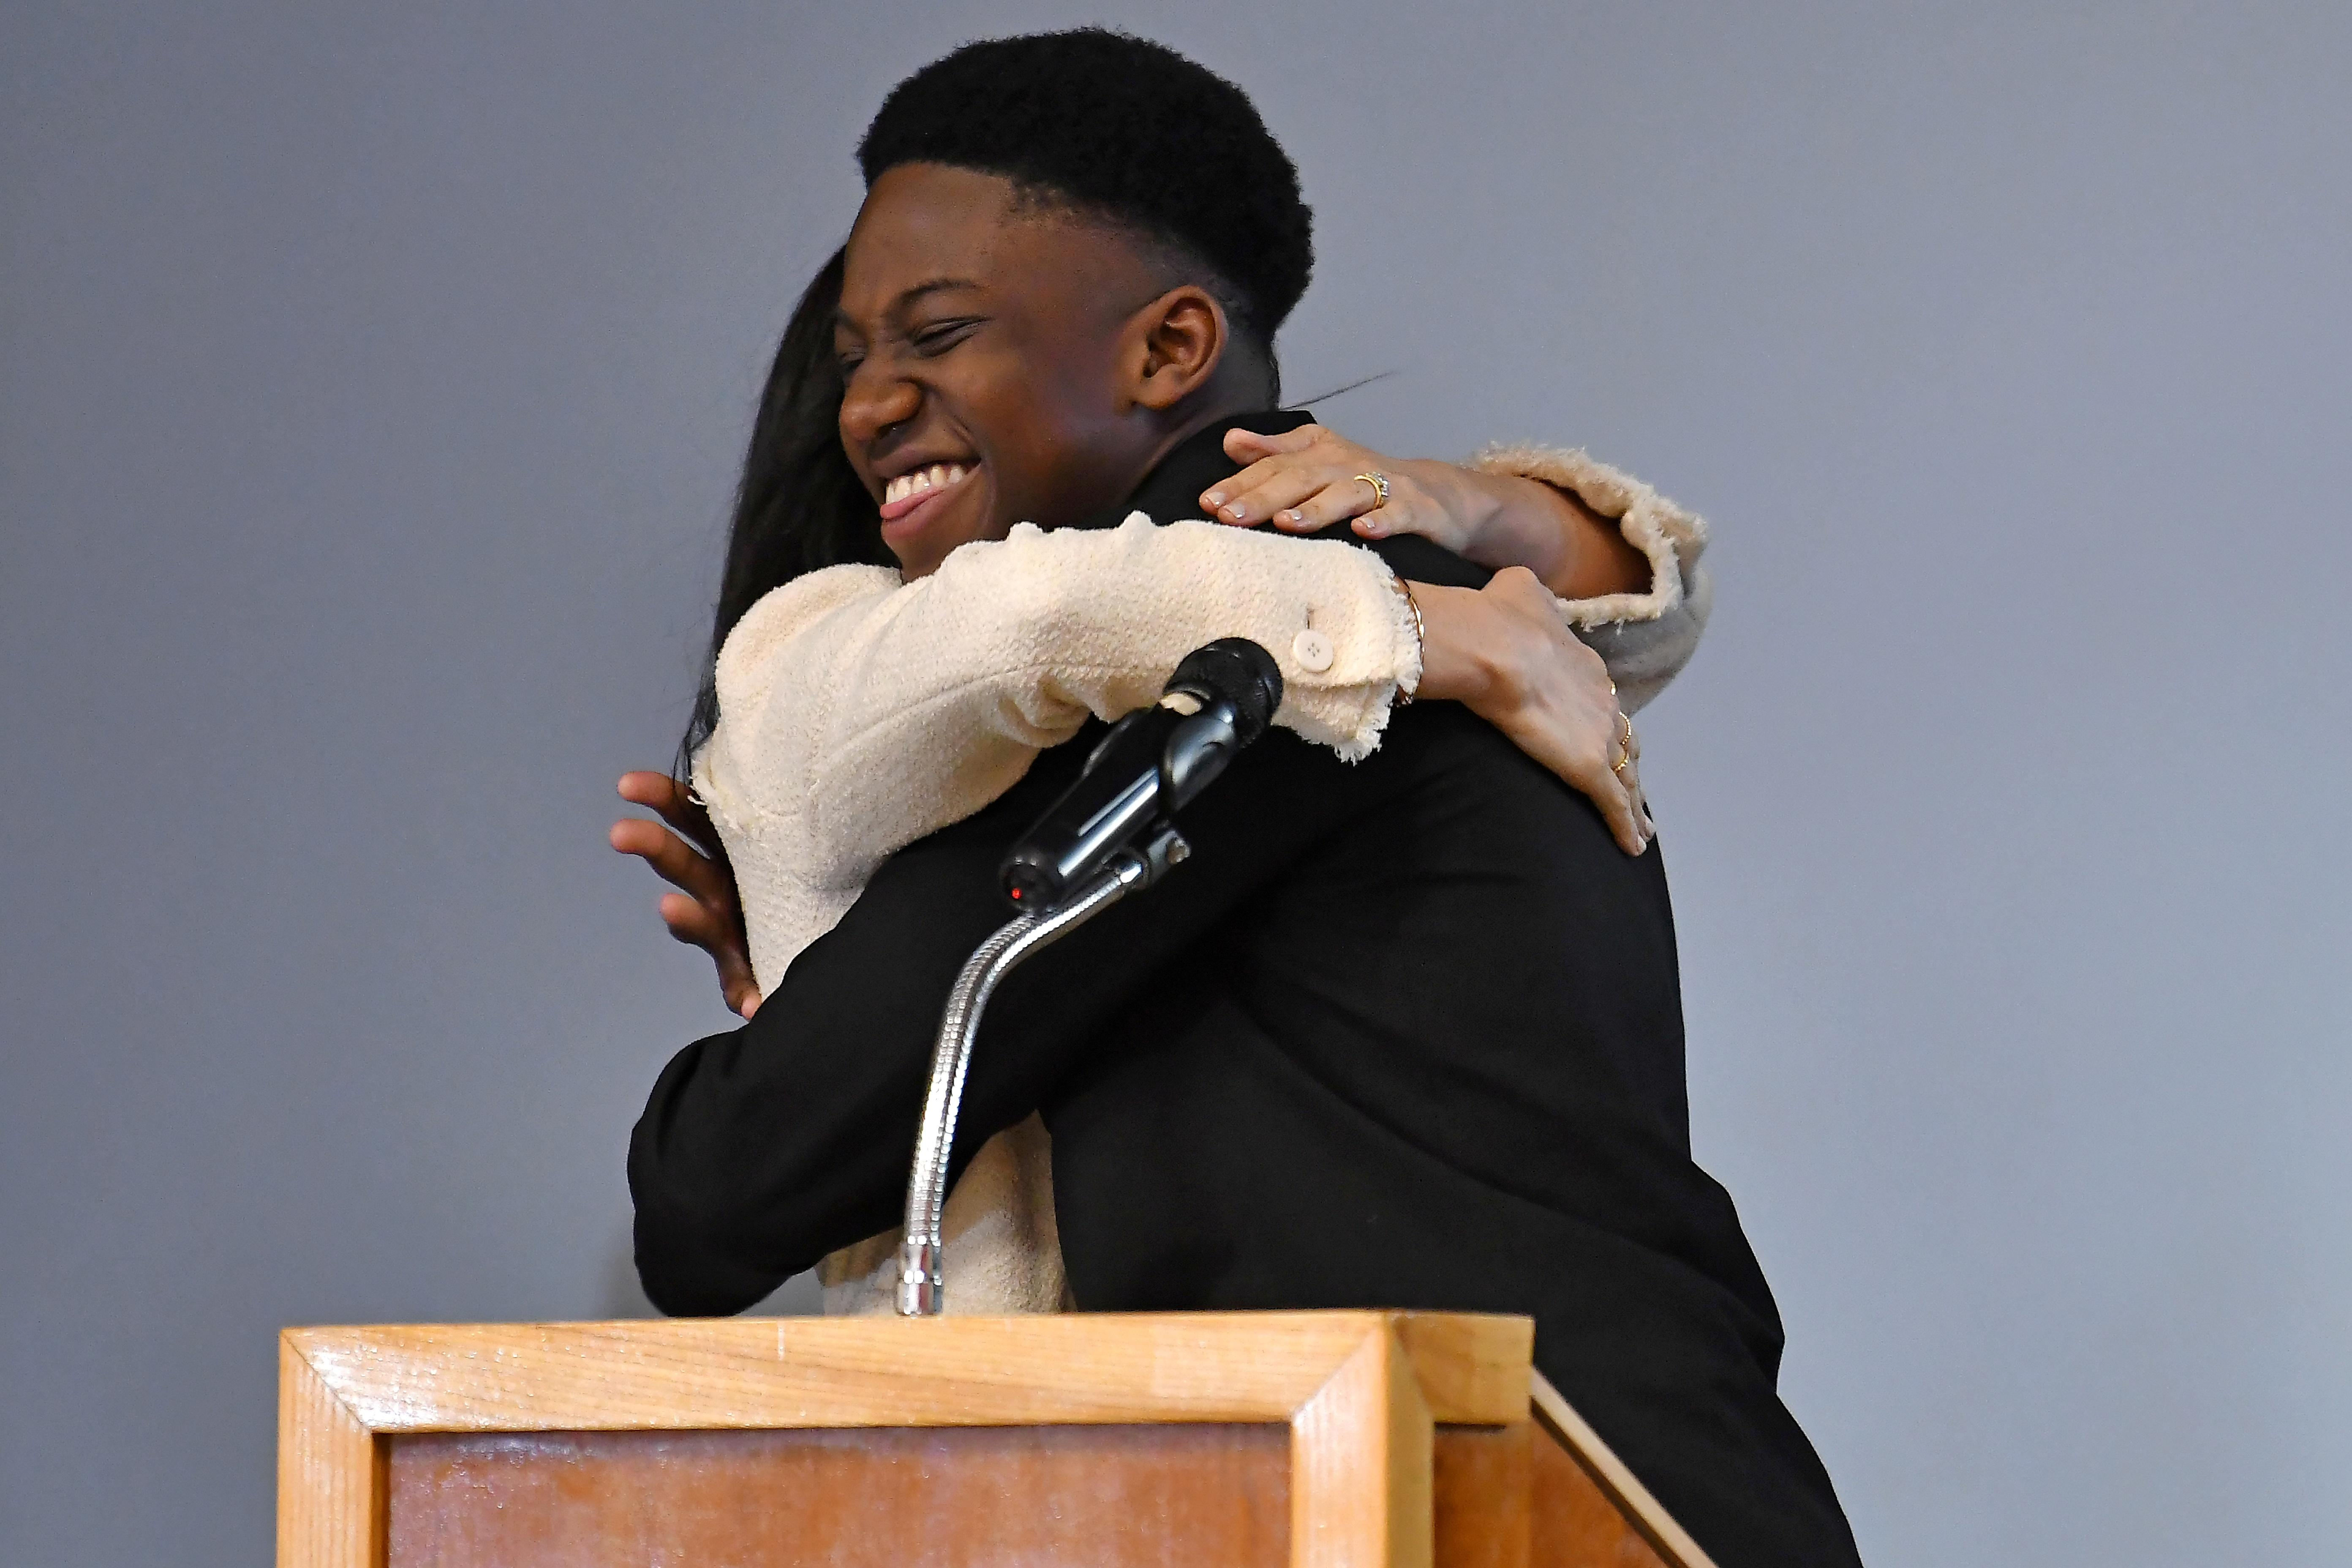 Britain's Meghan, Duchess of Sussex embraces student Aker Okoye during a school assembly as part of a visit to Robert Clack School in Essex, Britain March 6, 2020, in support of International Women's Day. Picture taken March 6, 2020. Ben Stansall/Pool via REUTERS